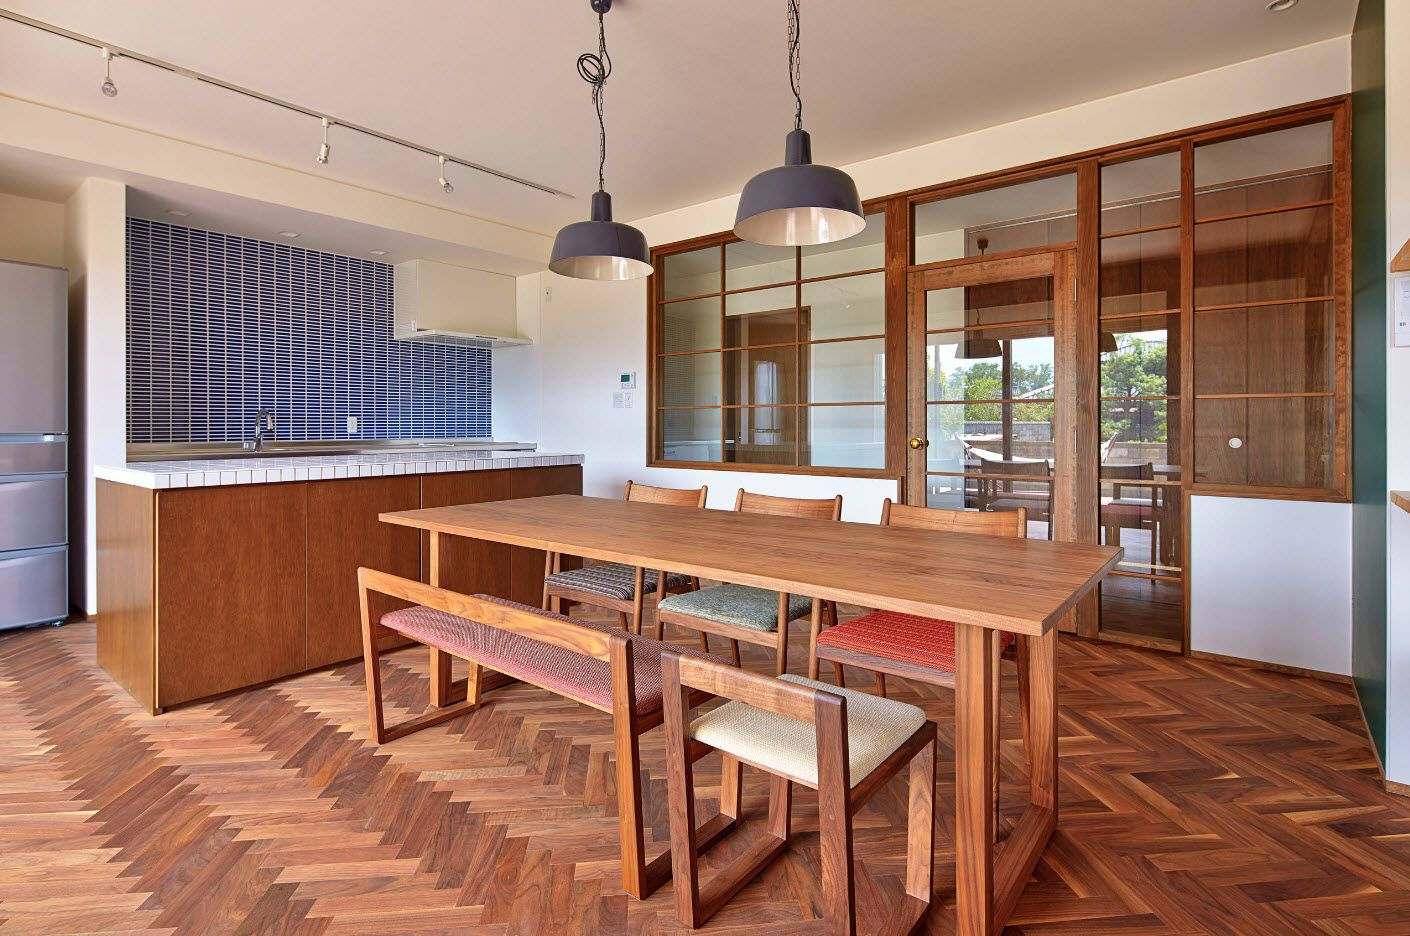 Total wooden idyll in the cottage dining zone